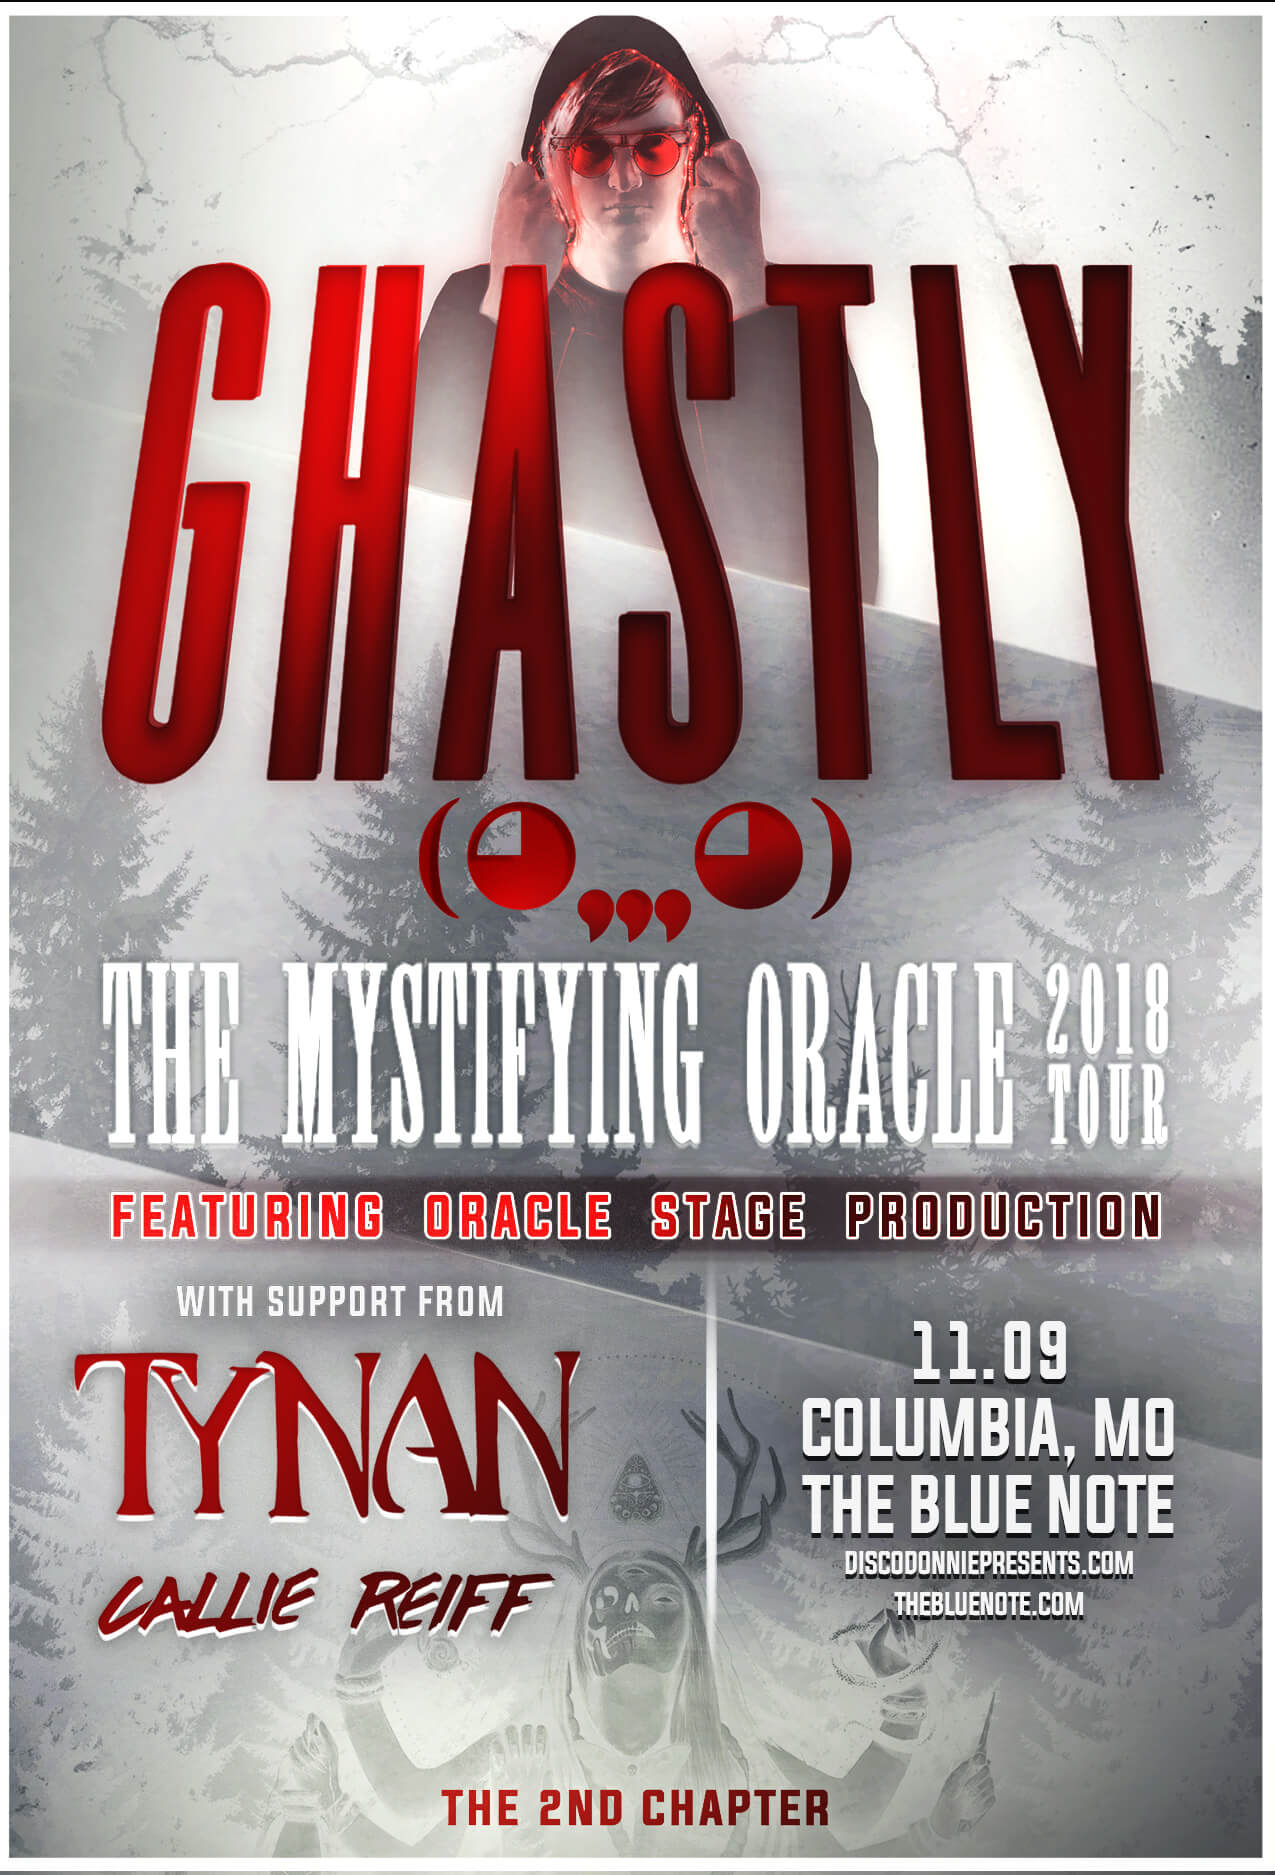 Ghastly, Tynan, Callie Reiff in Columbia